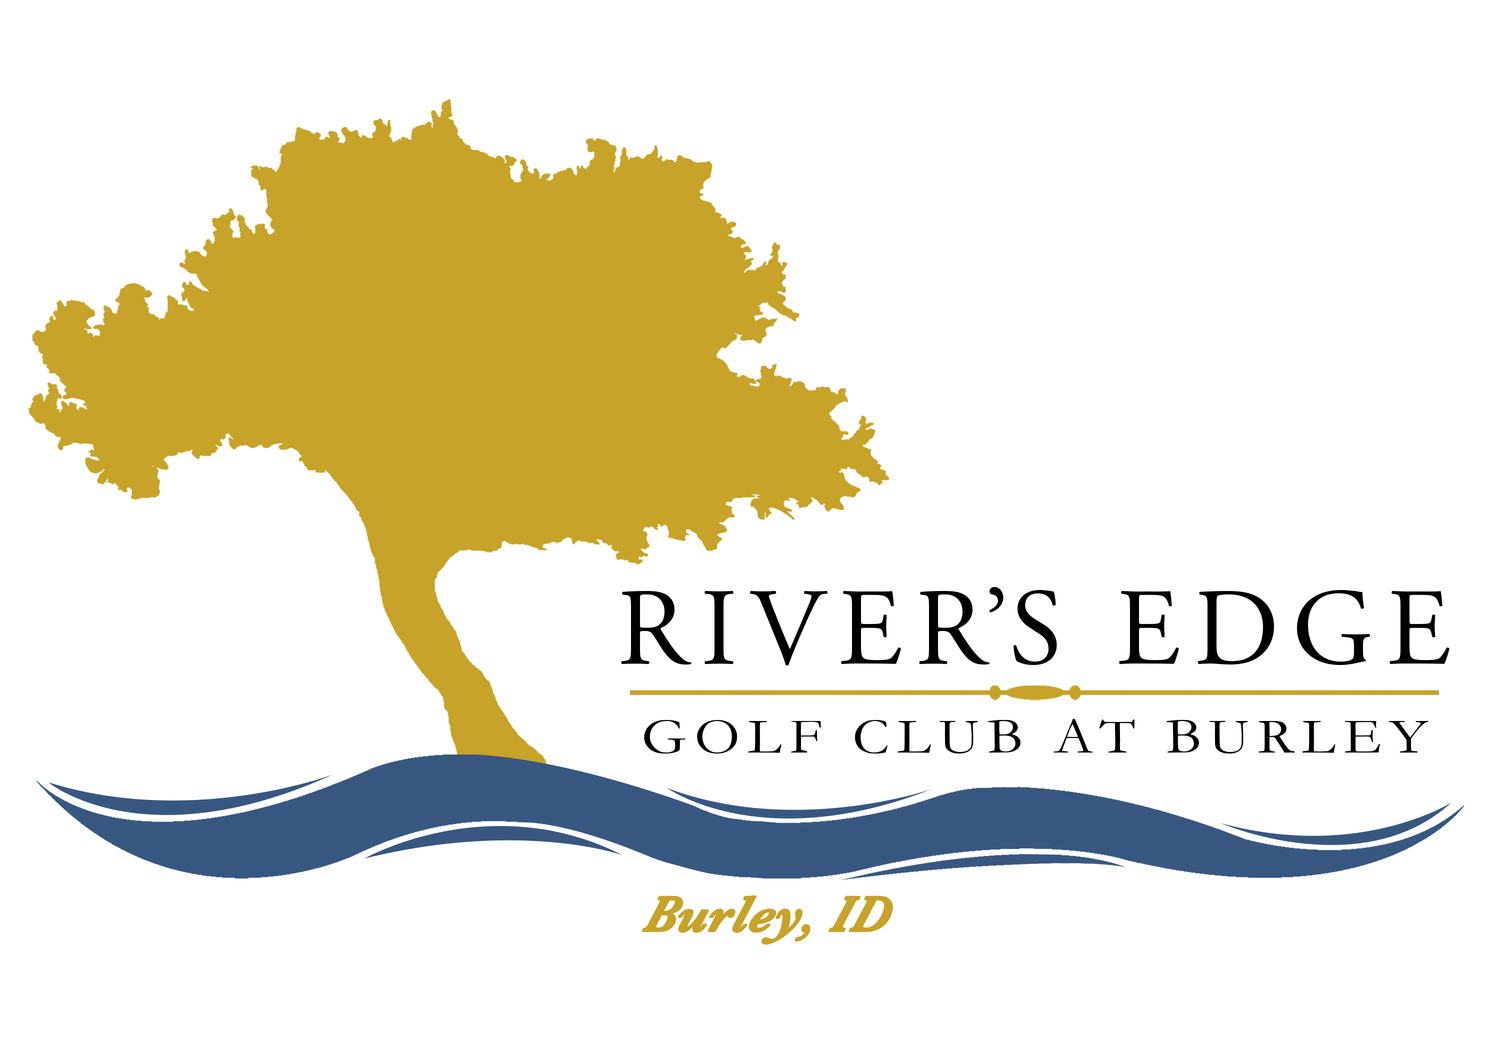 River's Edge Golf Club At Burley